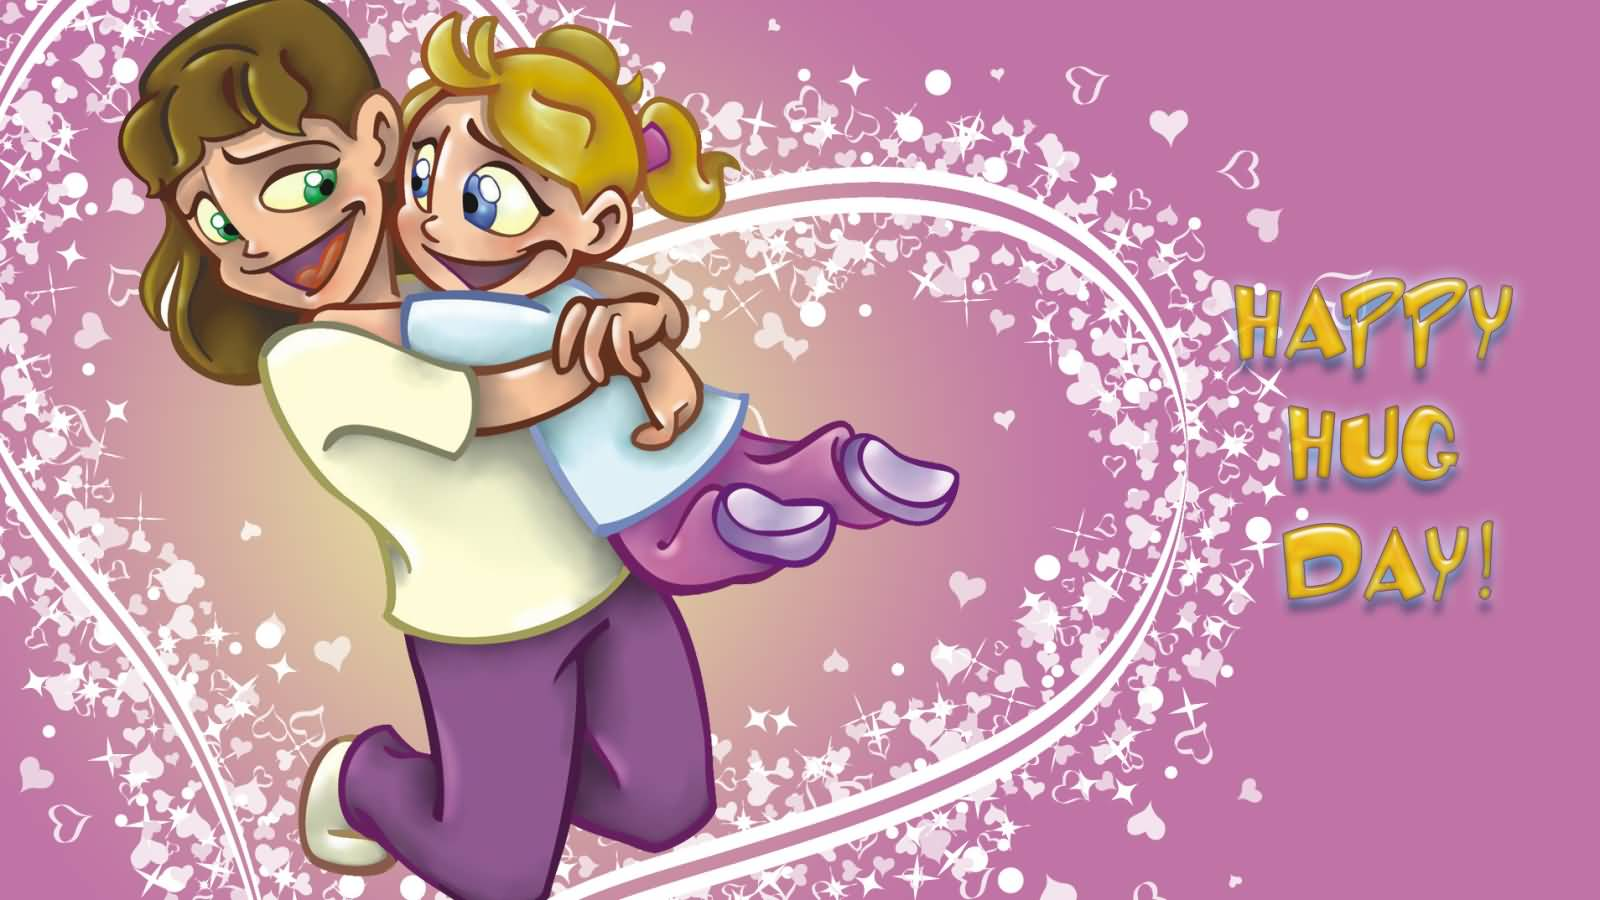 55 Happy Hug Day Greeting Card Pictures And Image